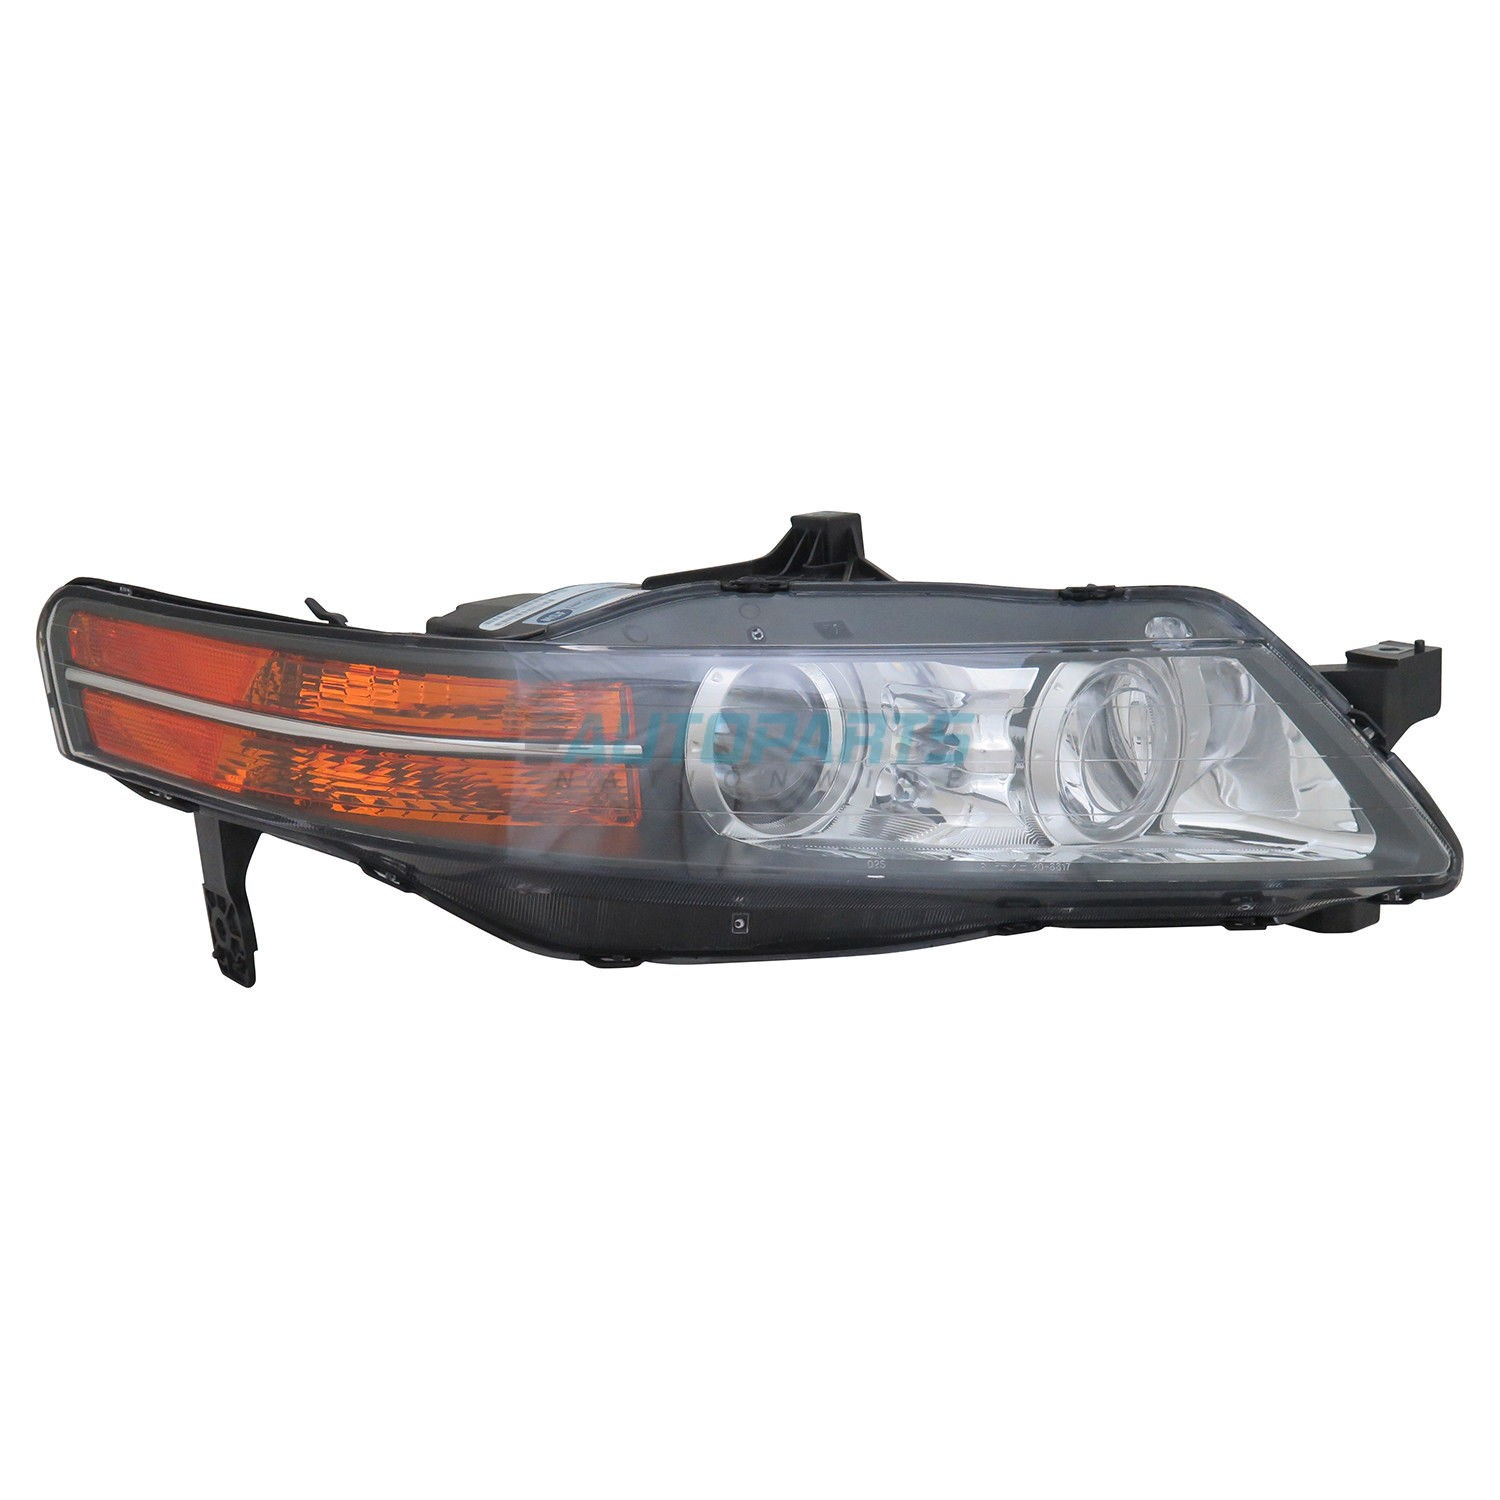 NEW RIGHT SIDE HID HEAD LIGHT LENS AND HOUSING FITS 2007